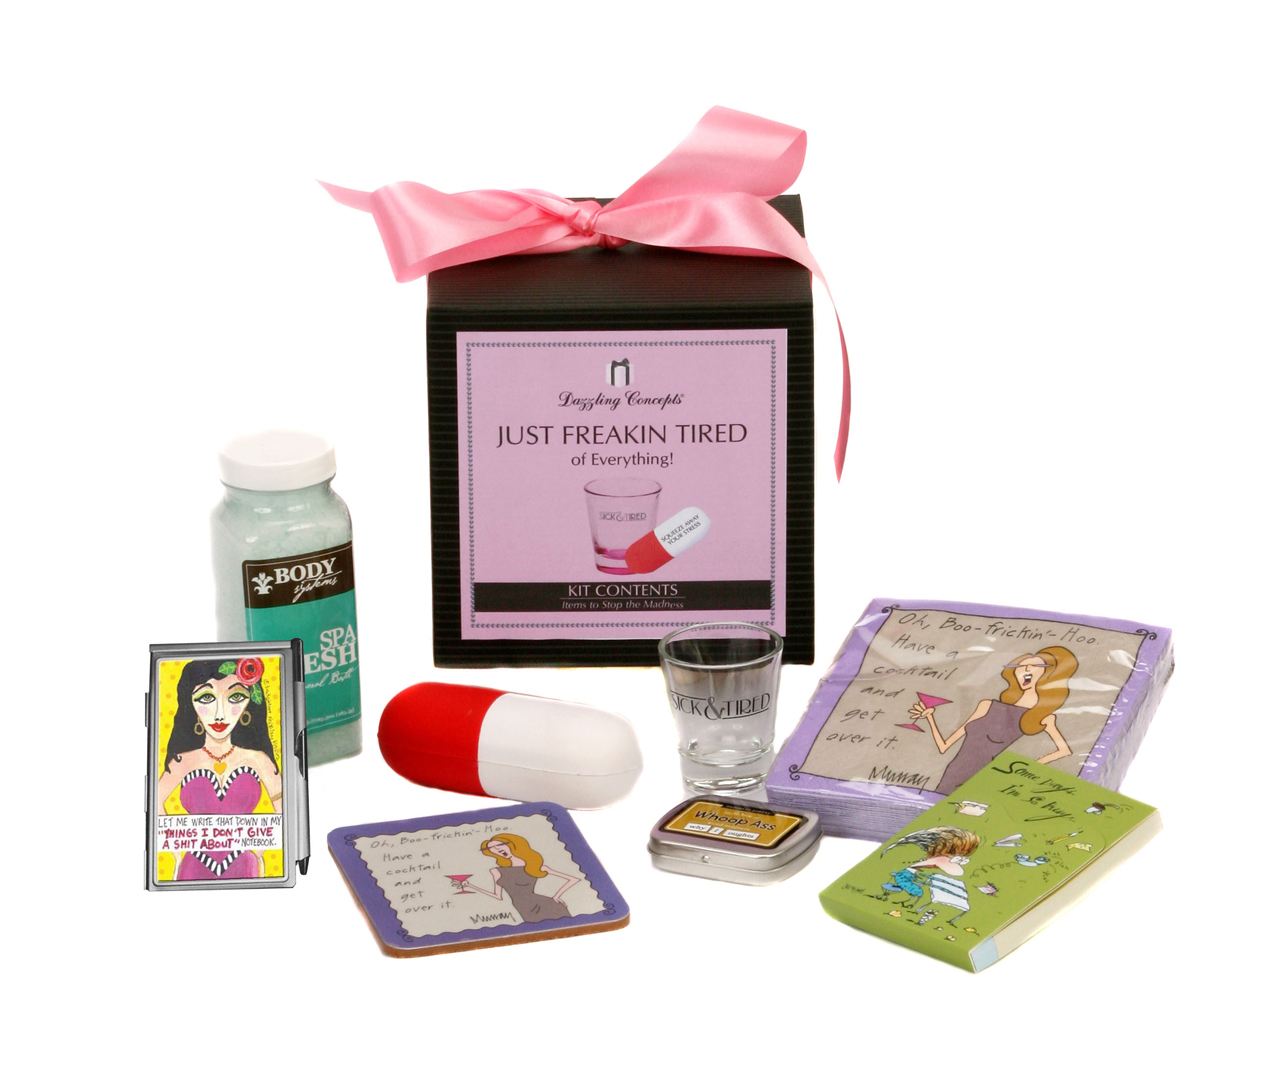 Our humorous gift kits are